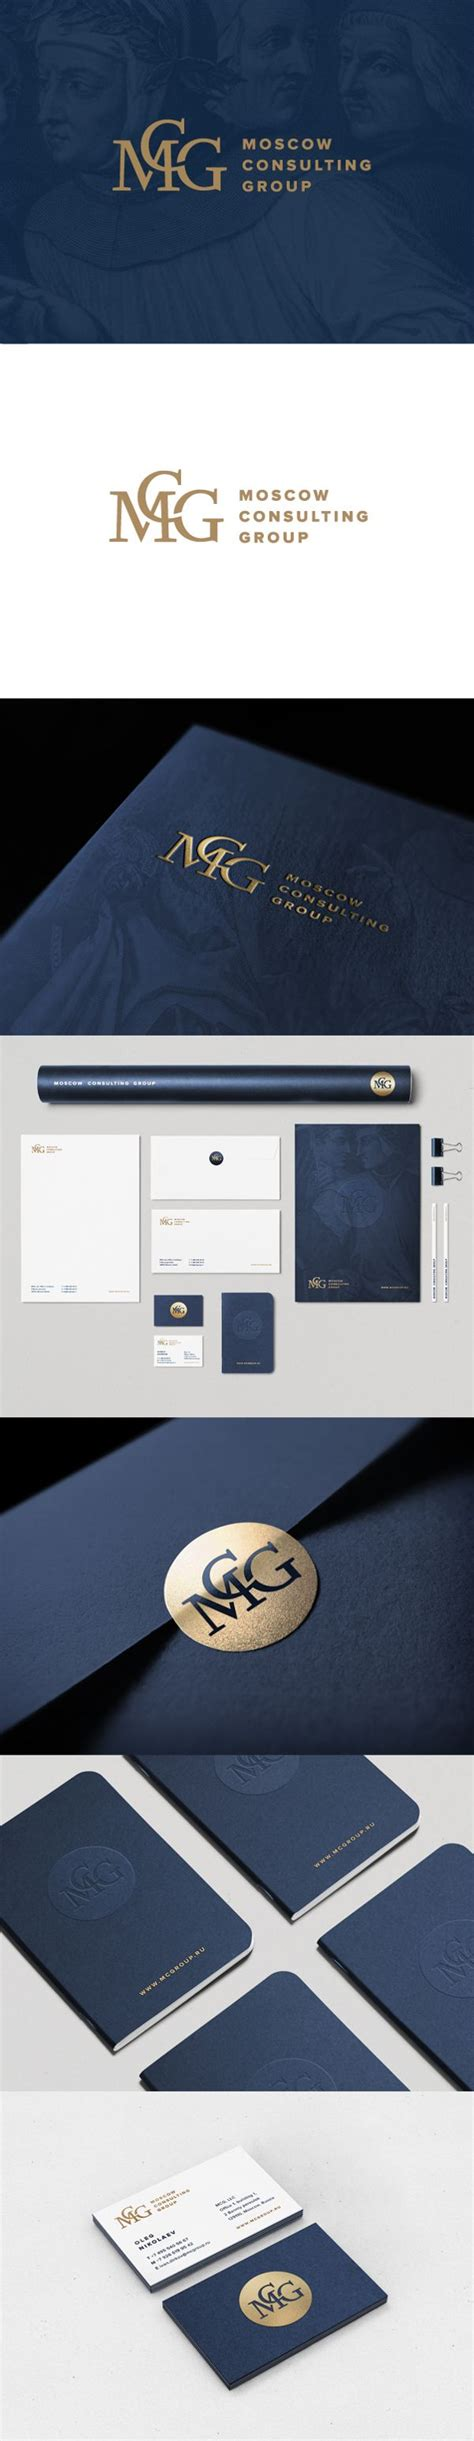 pin by lisa mosow on web design pinterest moscow consulting group identity web design by nika